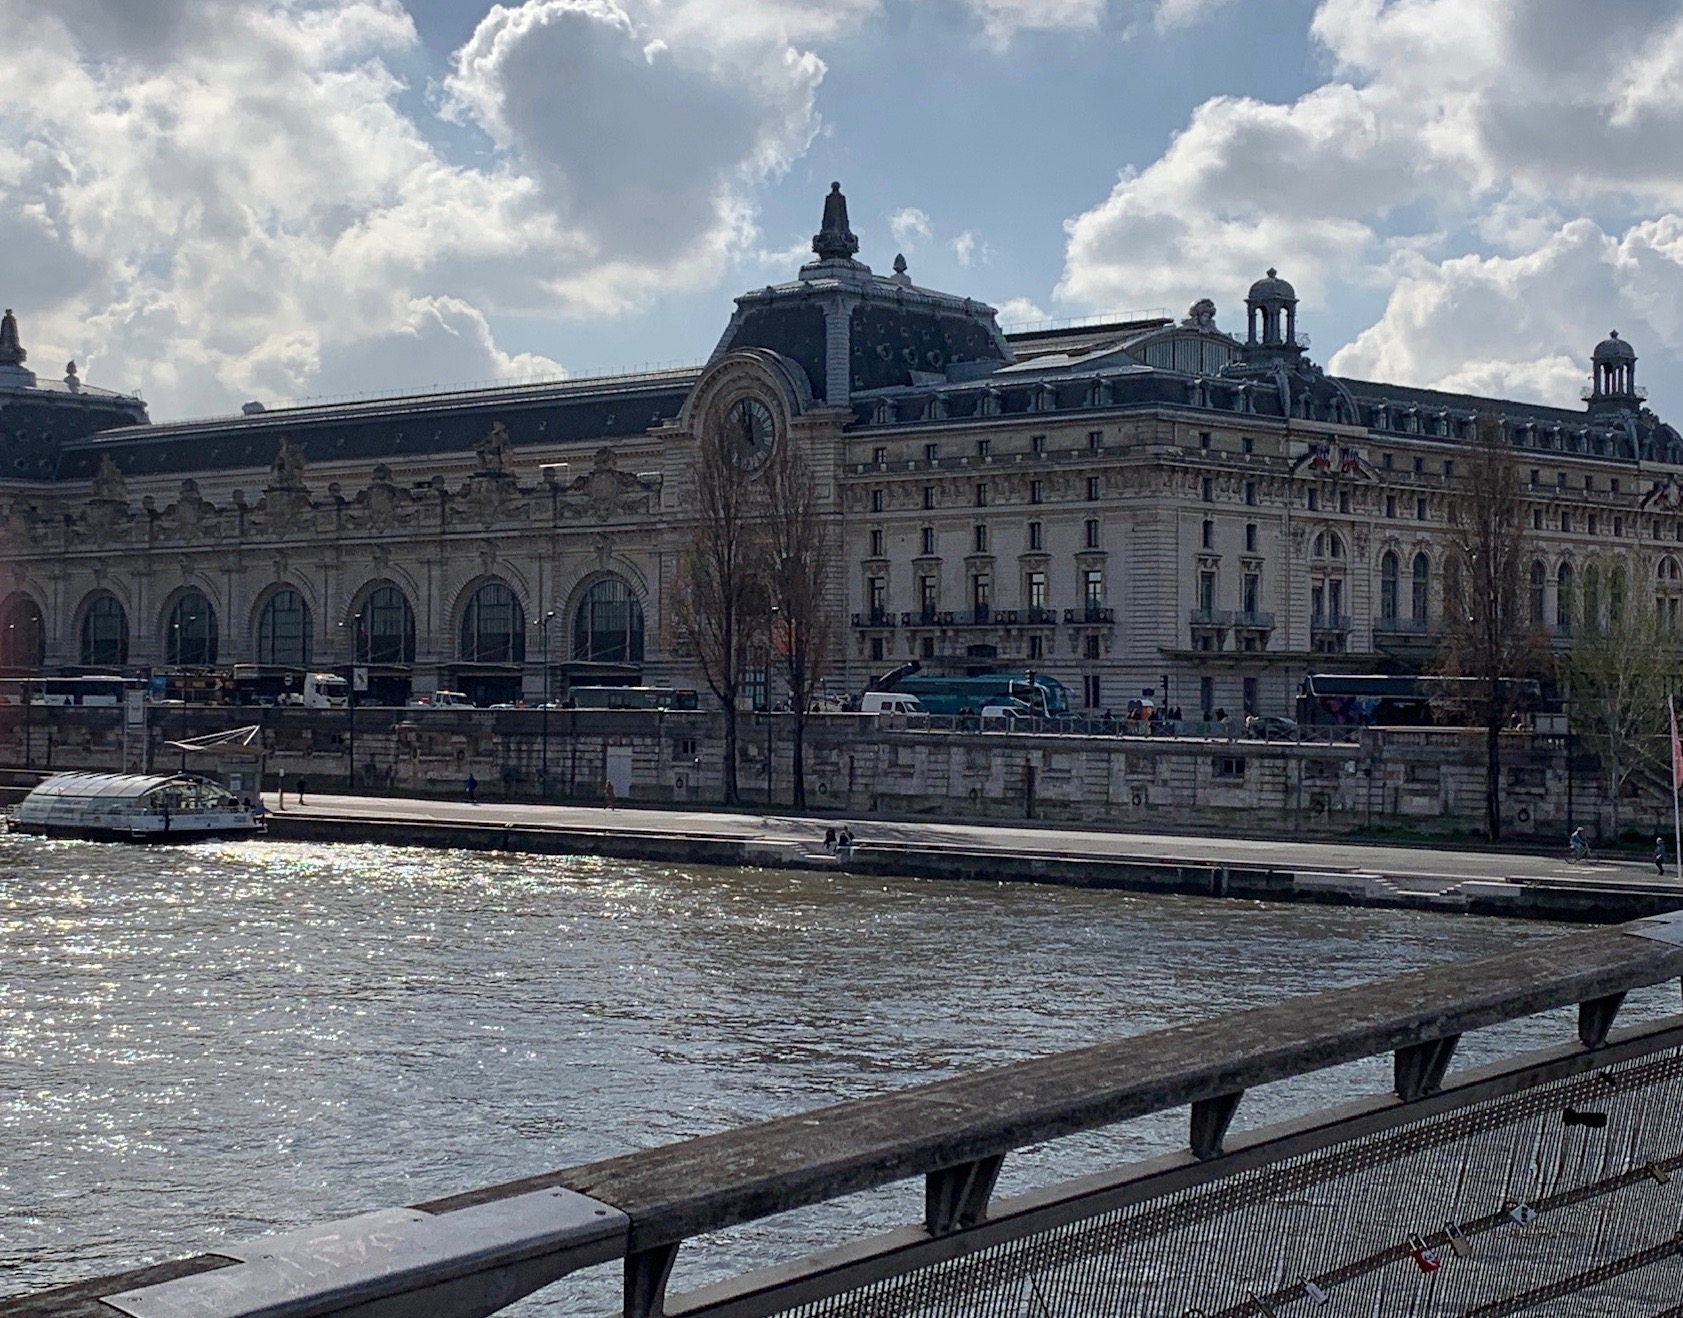 View of the Musée d'Orsay, while crossing the river Seine.